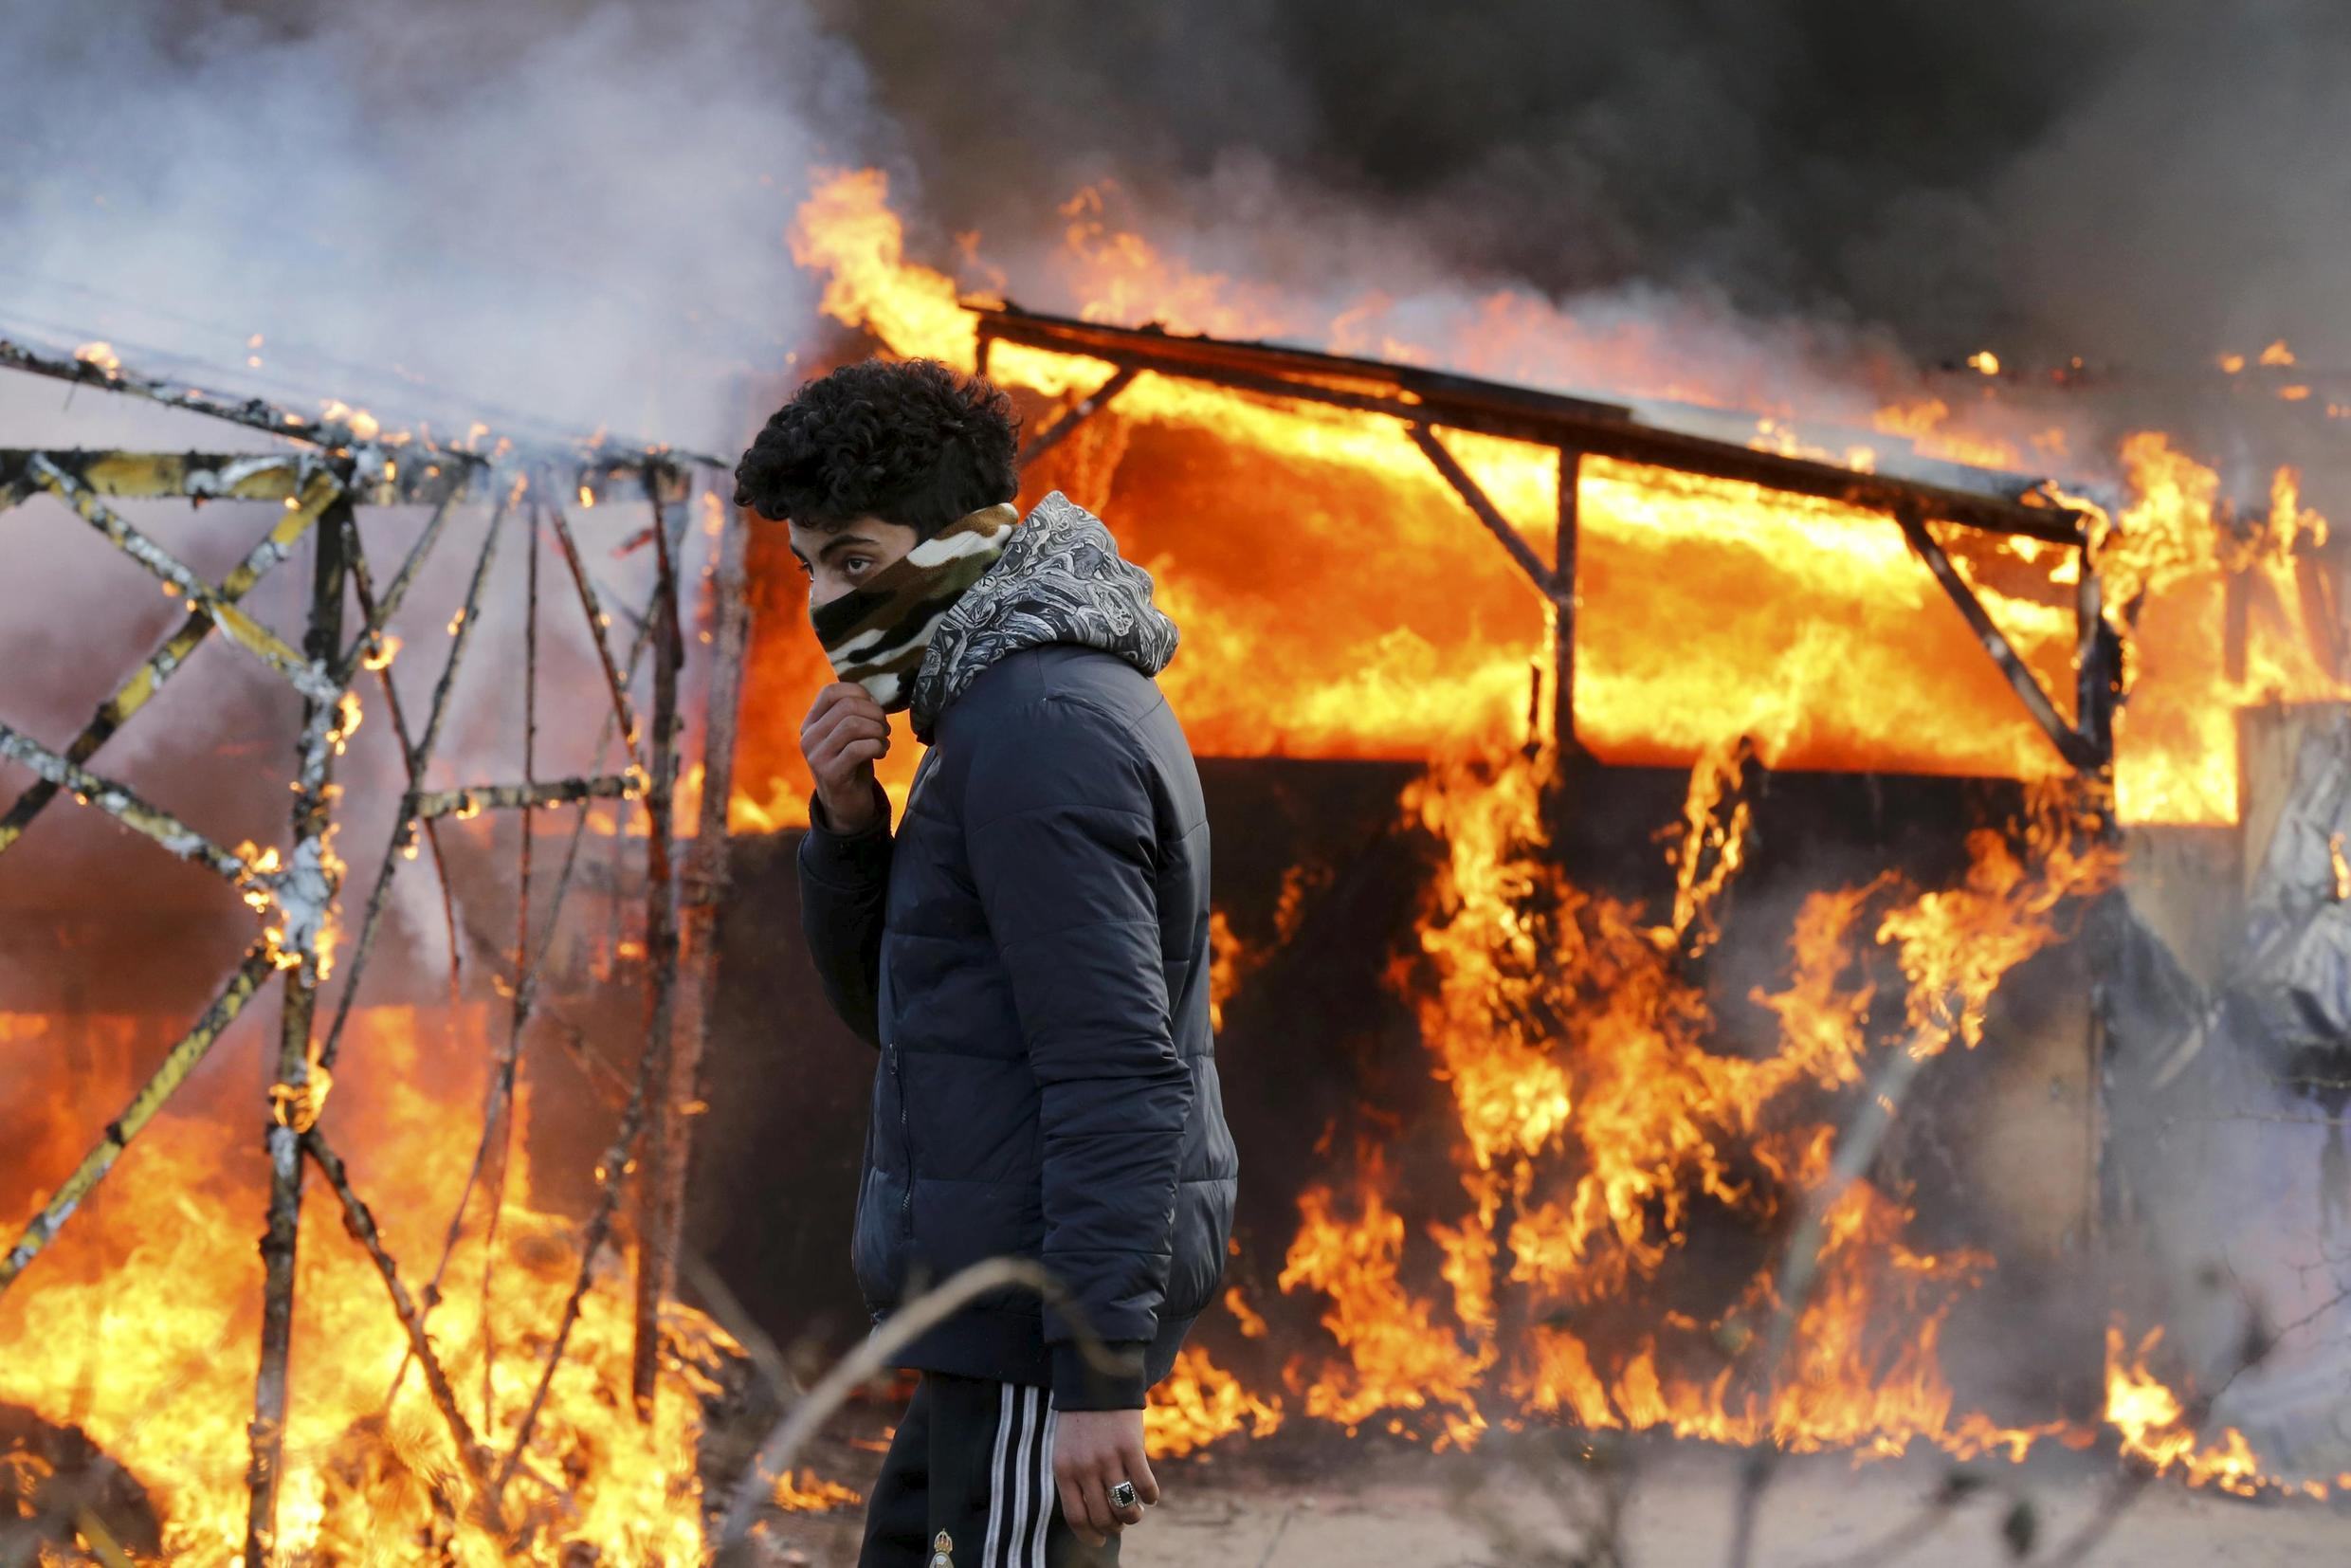 """A migrant walks past a burning makeshift shelter set ablaze in protest against the partial dismantlement of the camp for migrants called the """"jungle"""", in Calais"""